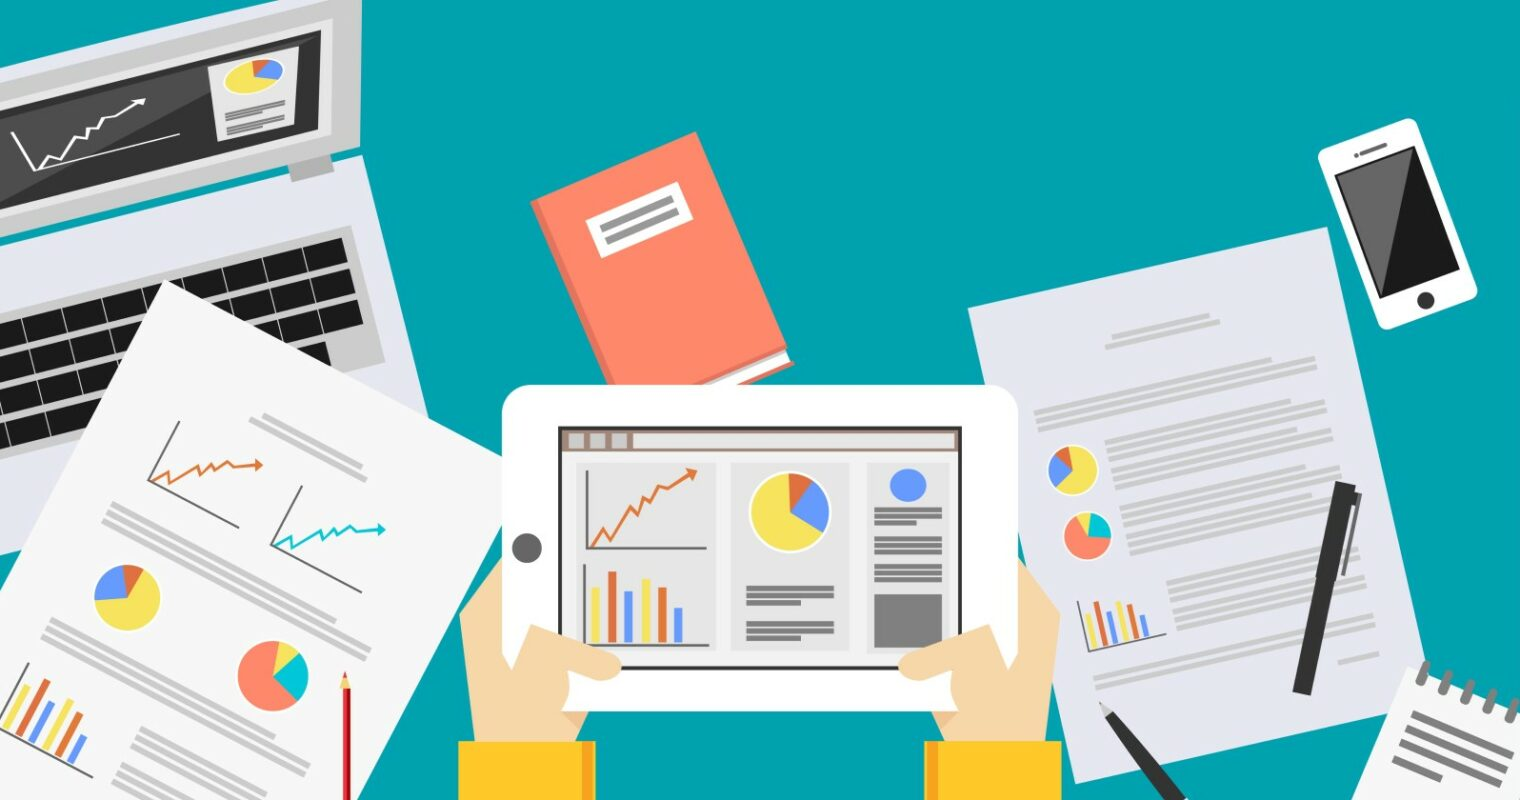 How to Use Search Trend Data to Drive Cross-Over Content Ideation